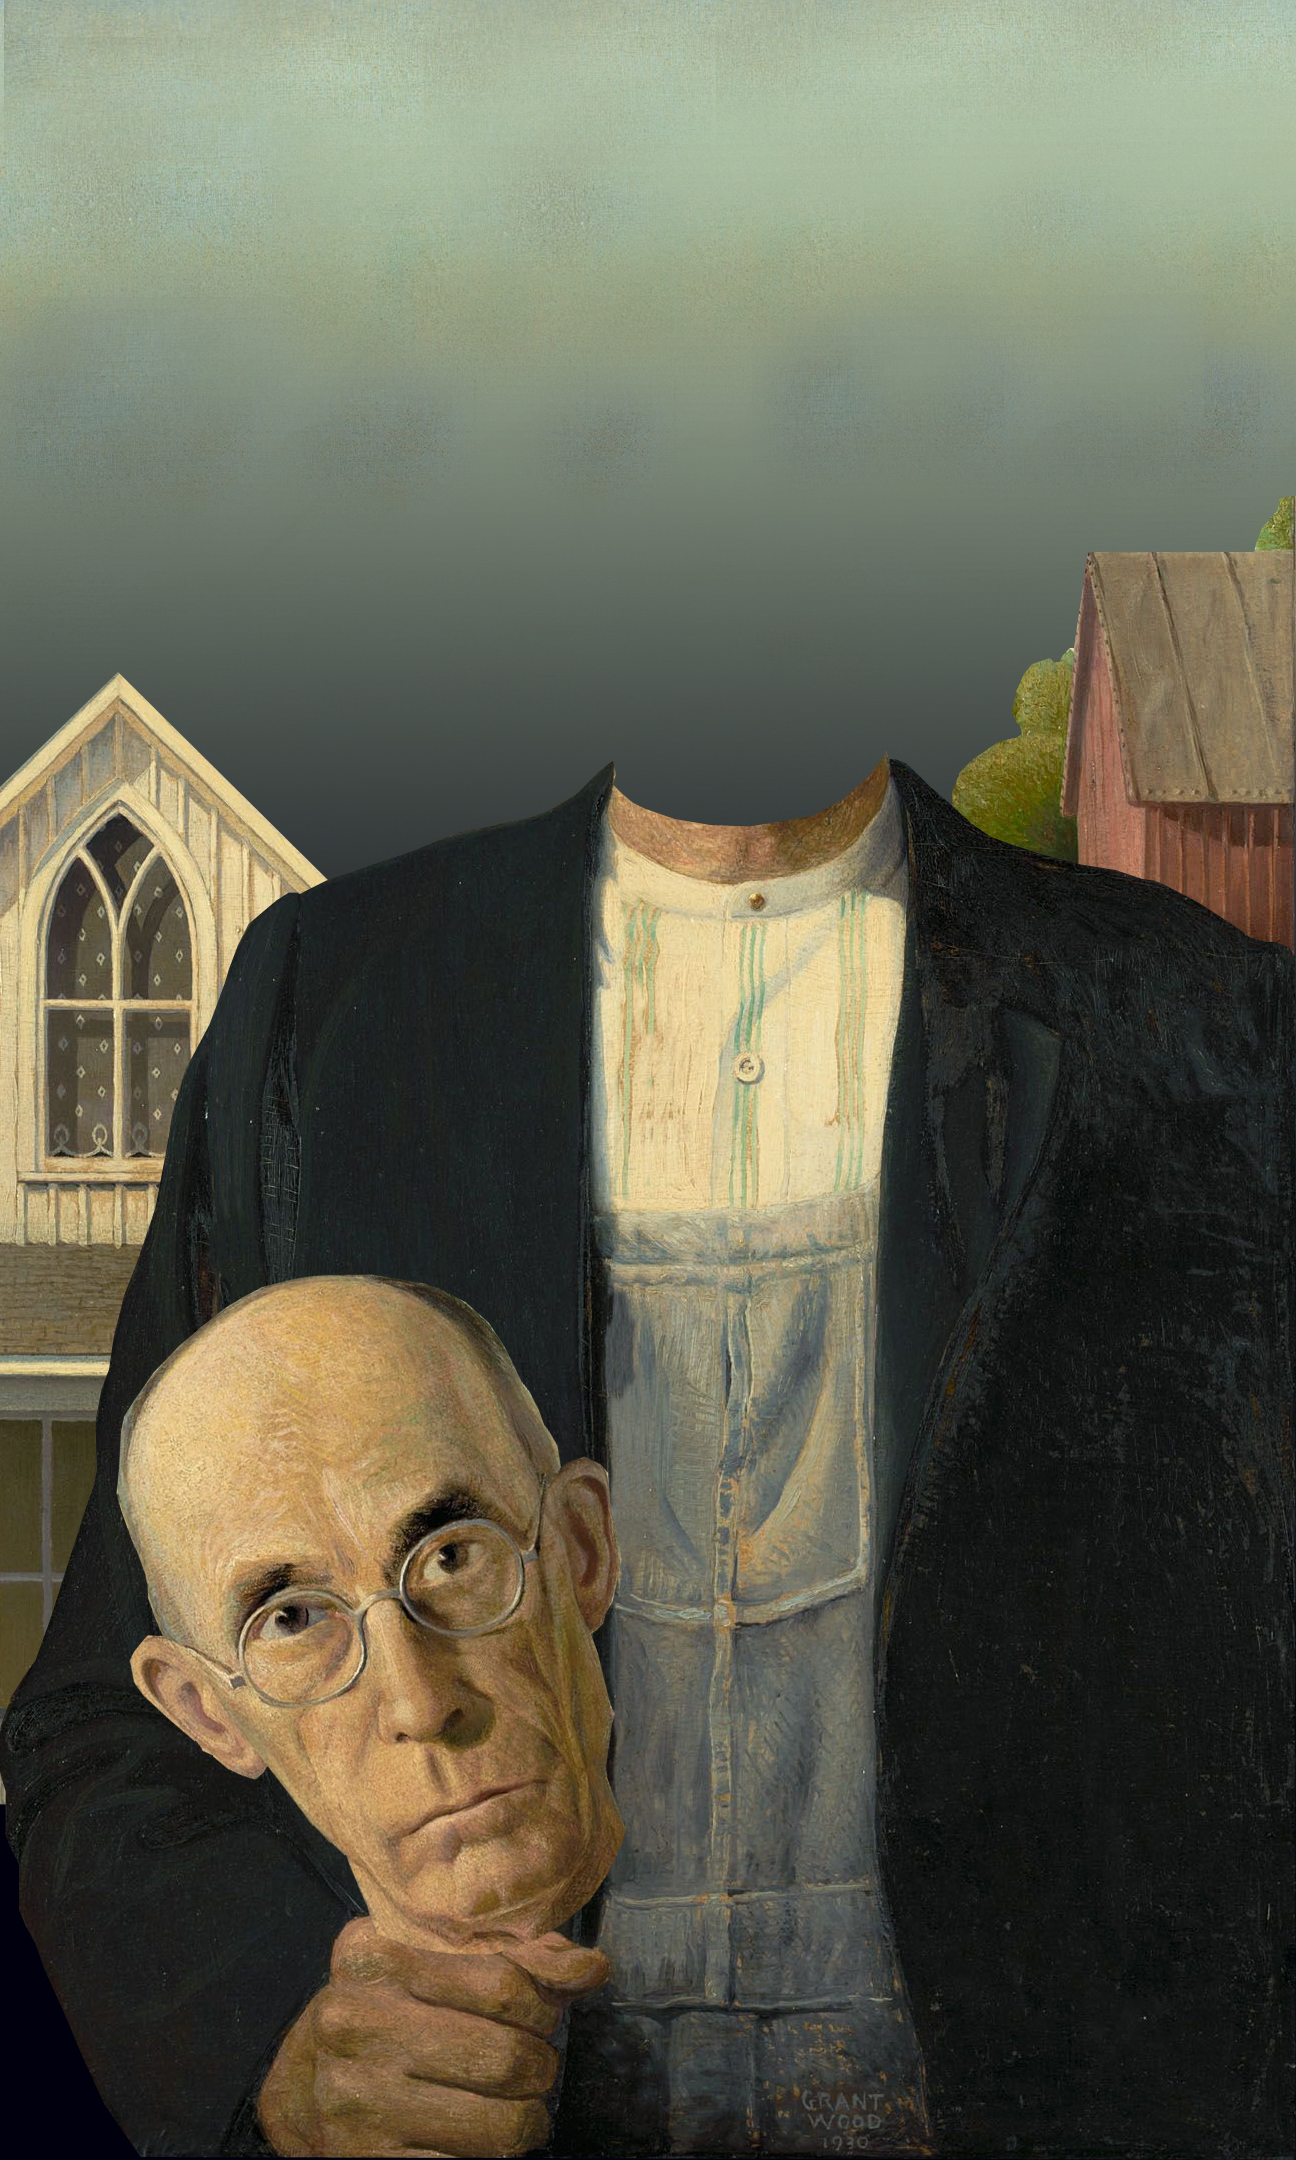 an analysis on american gothic by grant wood essay Grant wood essay by papernerd contributor he had painted american gothic in that scene cary grant is shown carrying this glowing glass of milk up a flight.